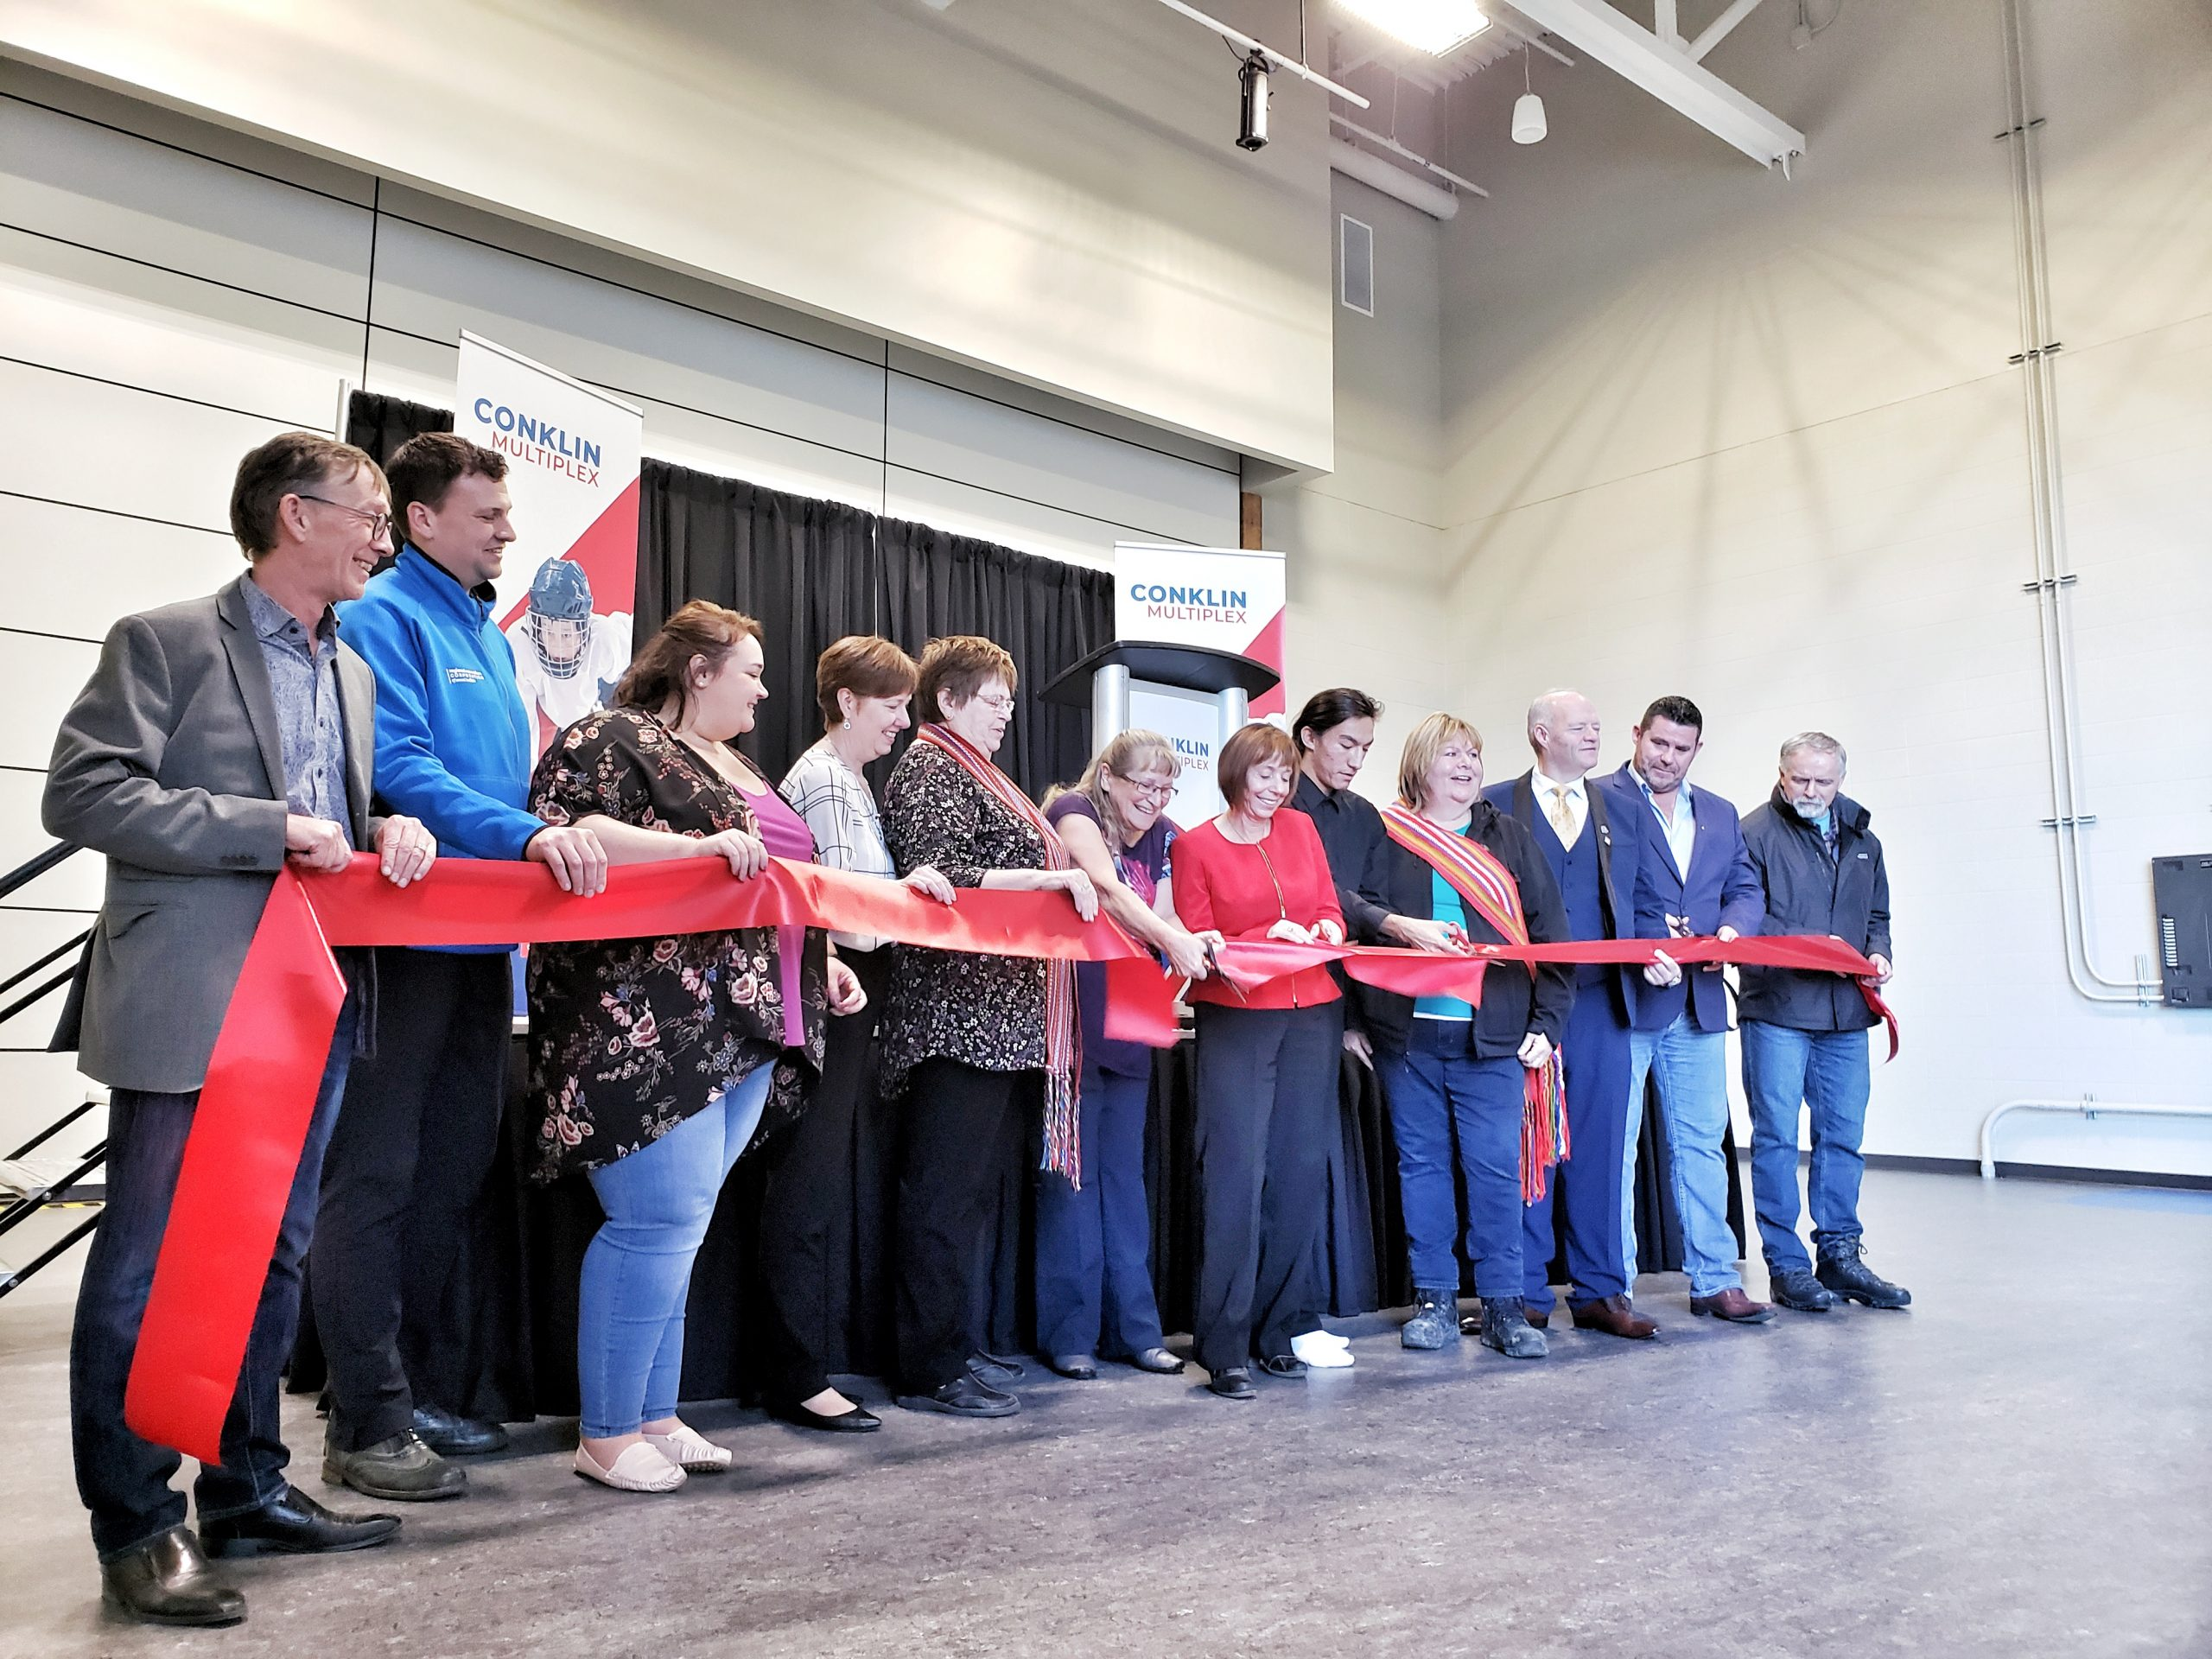 Municipality Celebrates Opening Of Conklin Multiplex And Anzac Fire Hall